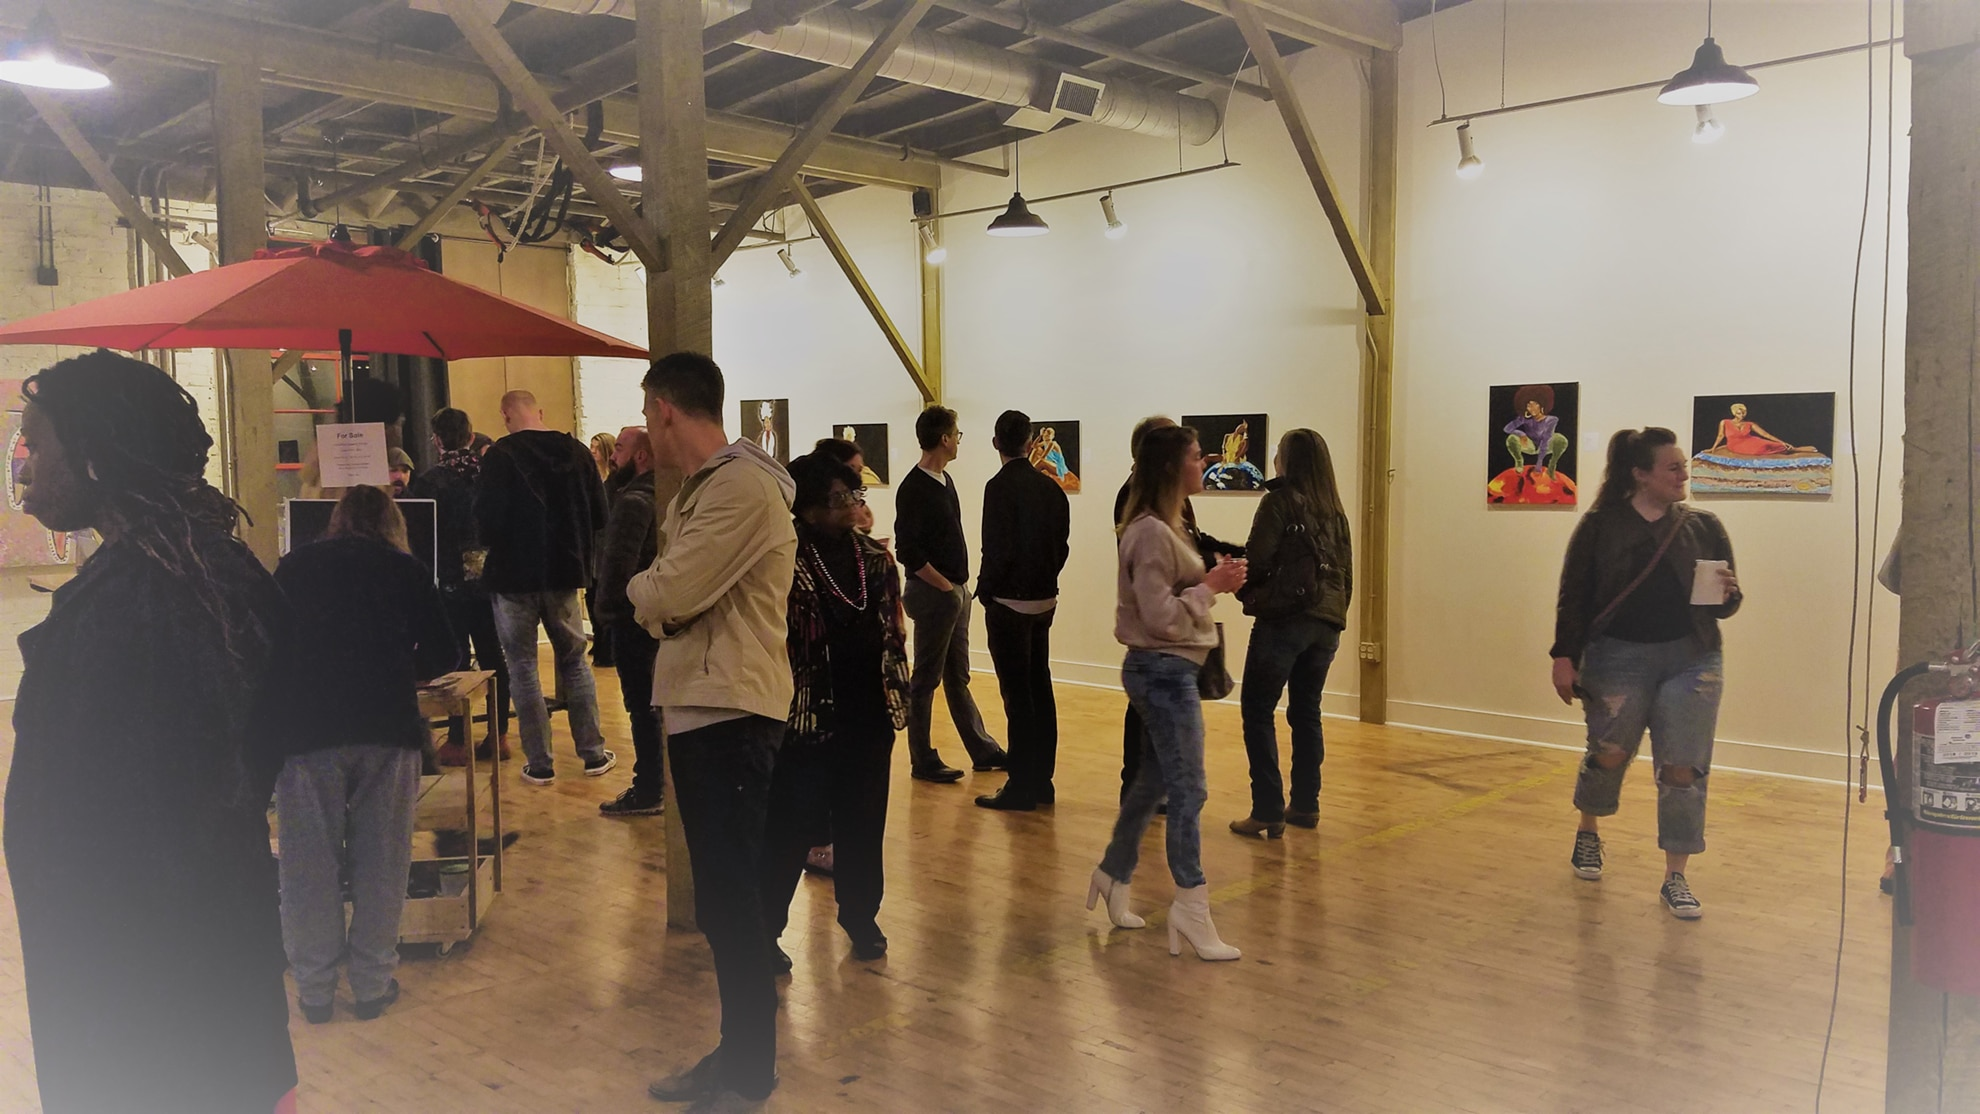 Photo of the opening of the Core Essence by Amanda Downs in abrasiveMedia in February of 2019. A group of people are viewing art on the walls and socializing.